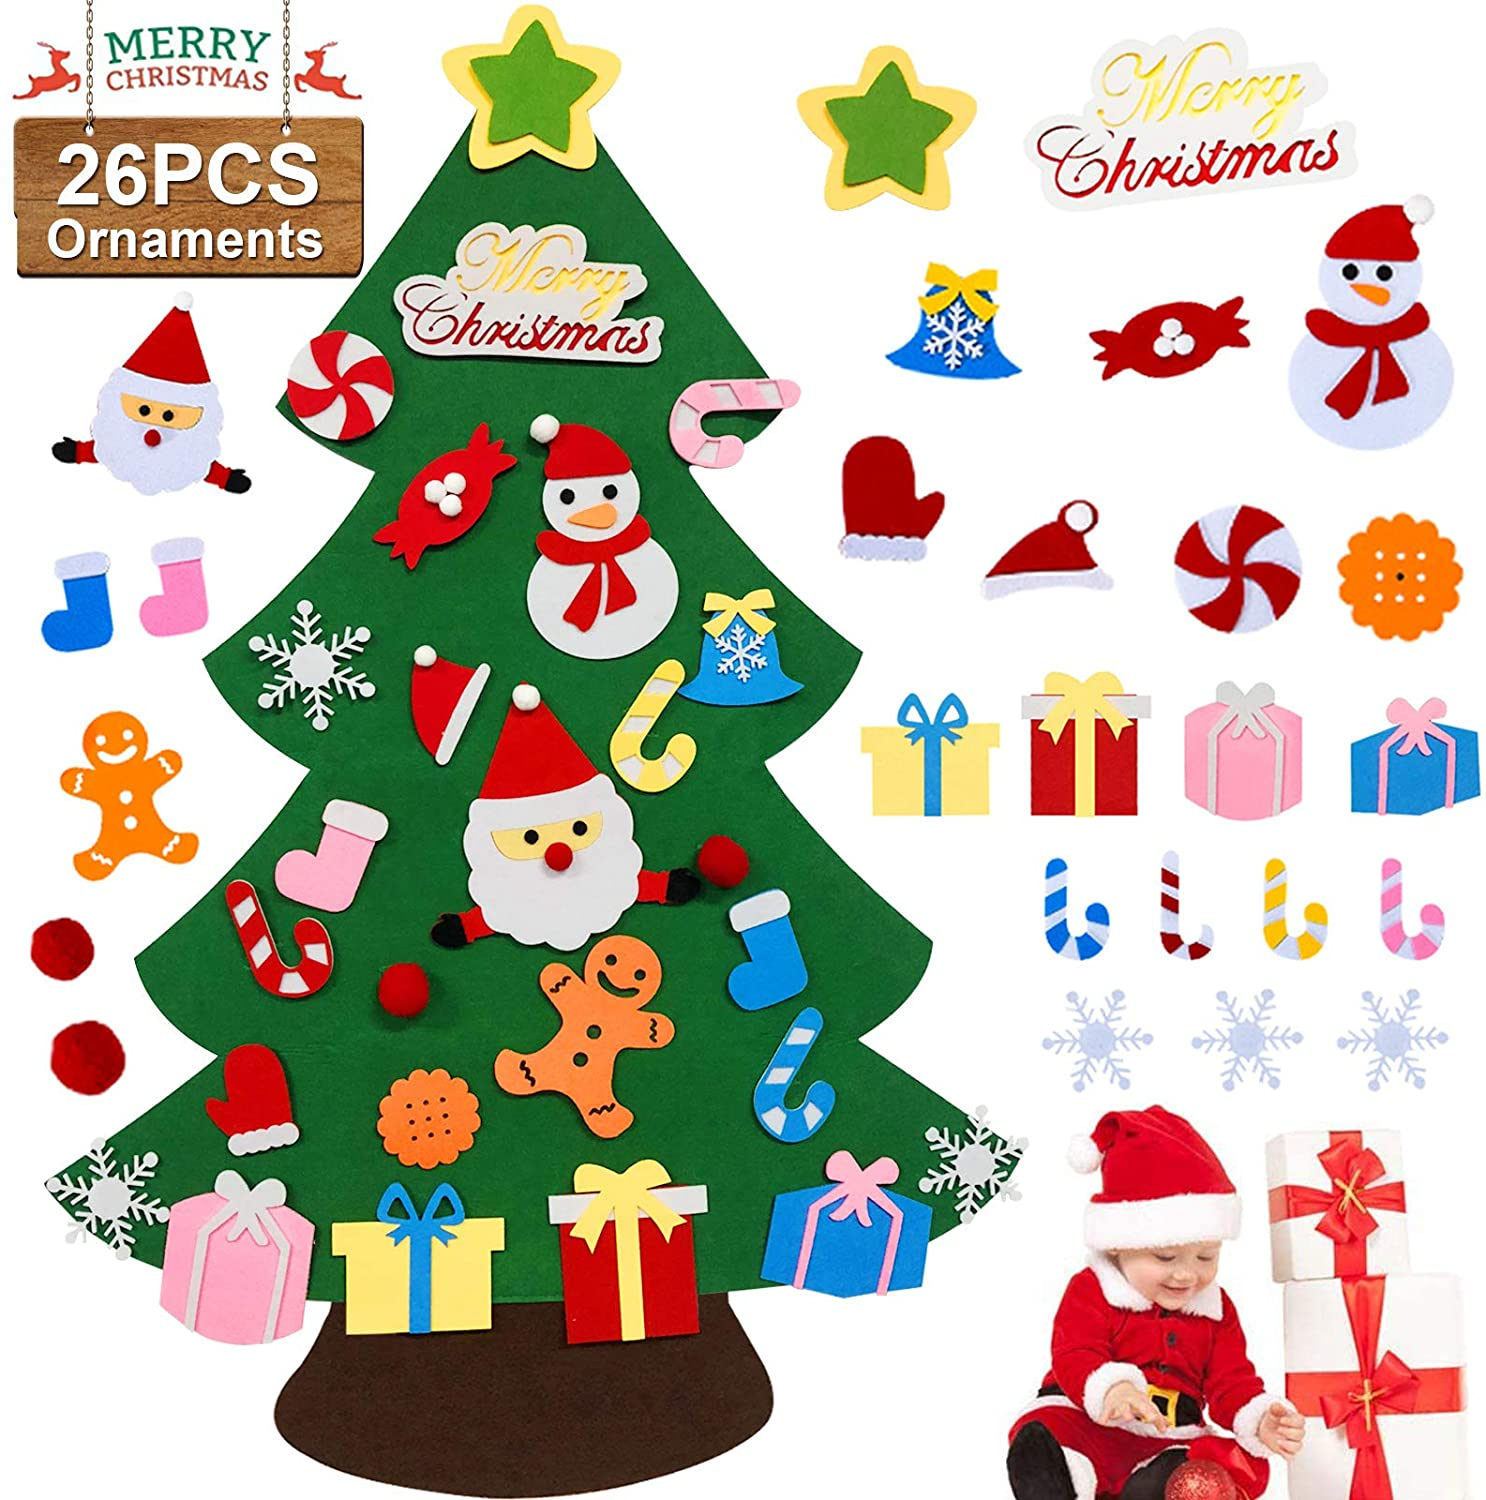 Lnkoo Felt Christmas Tree Set Diy 3 2ft With 26 Ornaments Xmas Decoration Home Wall Hanging Children S Felt Craft Kits Party Supplies Gifts For Kids Toddlers Walmart Com Walmart Com